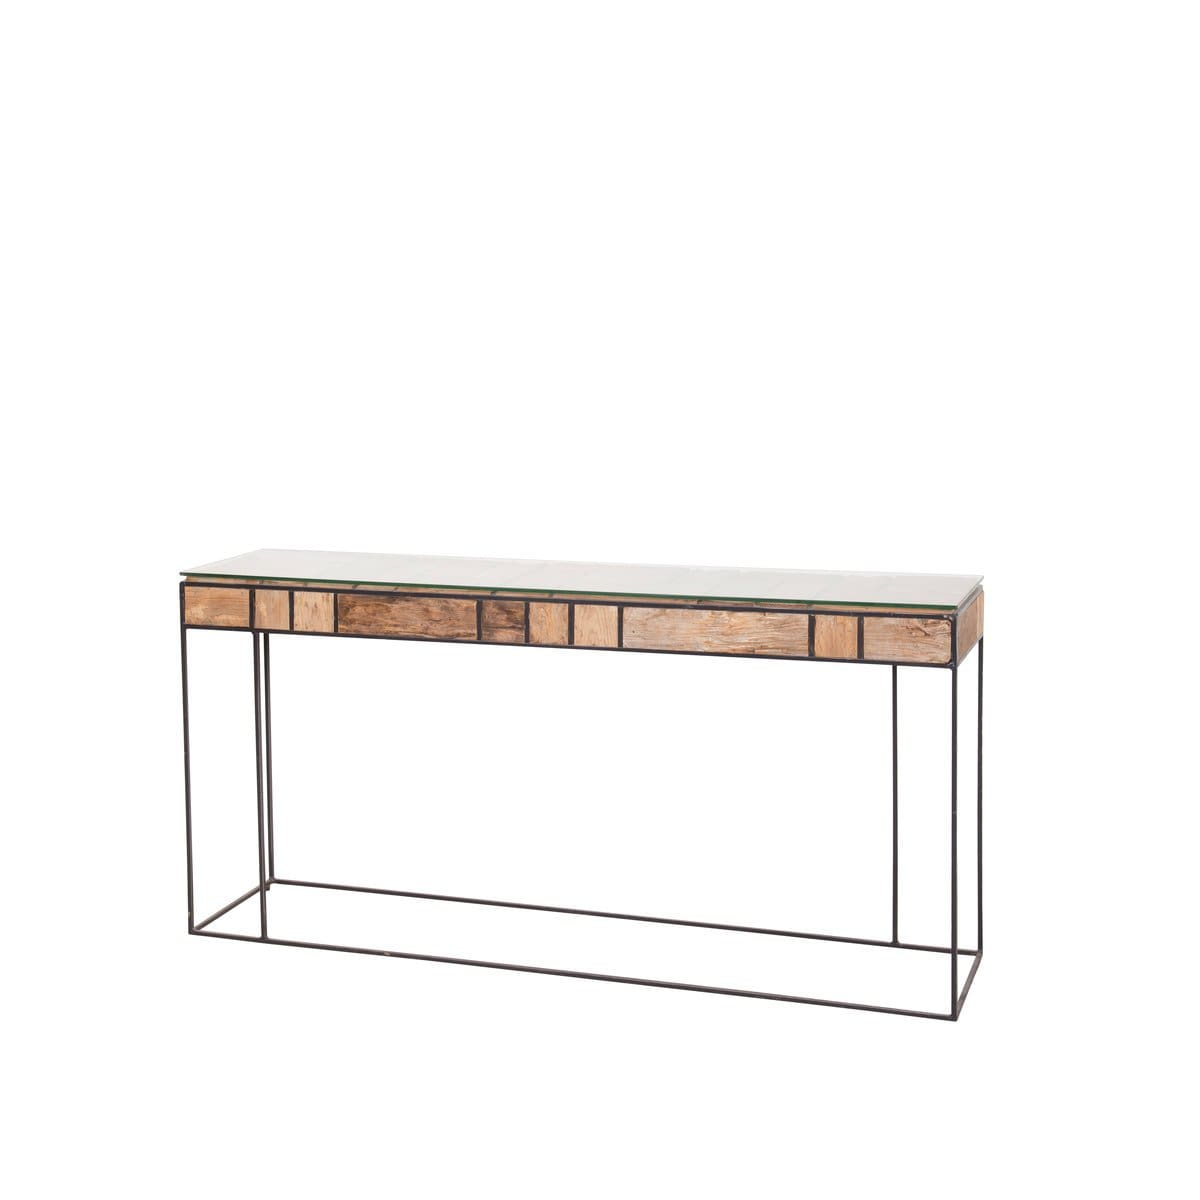 Royal Rubix Console Table w/ Glass - CONSOLE TABLE